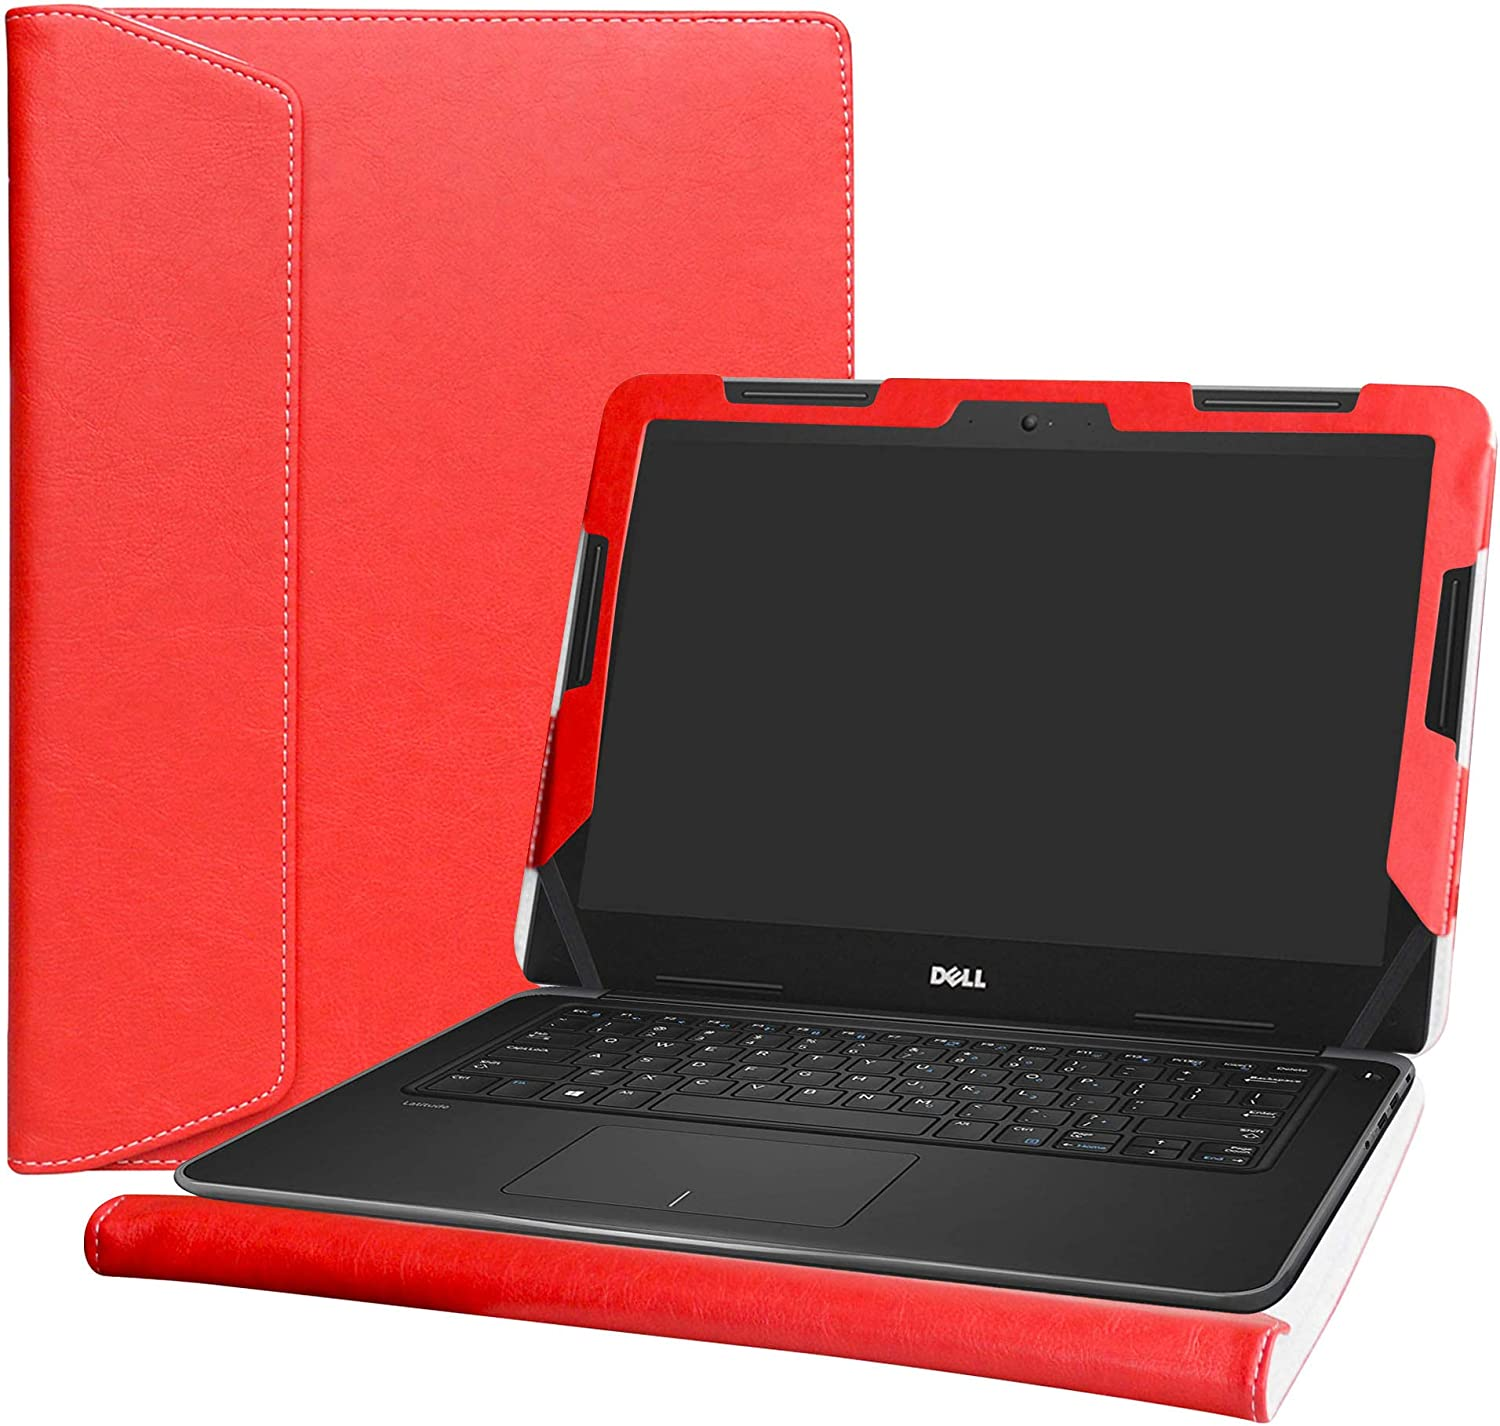 "Alapmk Protective Case Cover for 13.3"" Dell Latitude 13 3380 Education & Dell Chromebook 13 3380 Series Laptop(Warning:Not fit Latitude 13 3350 3340 3330/Latitude 13 2-in-1 3390 3379),Red"